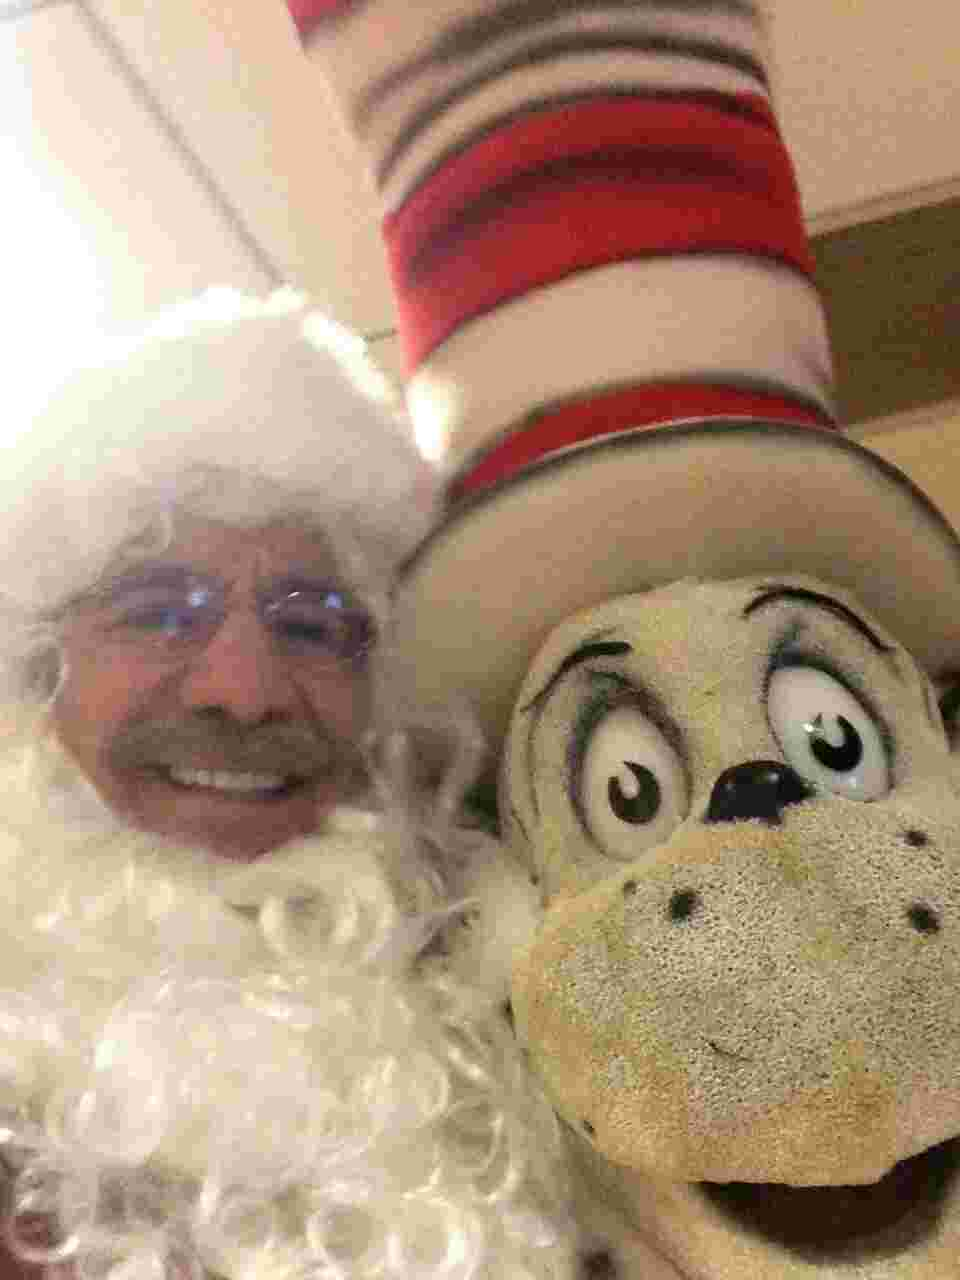 Geraldo as Santa Claus poses with Cat In The Hat.